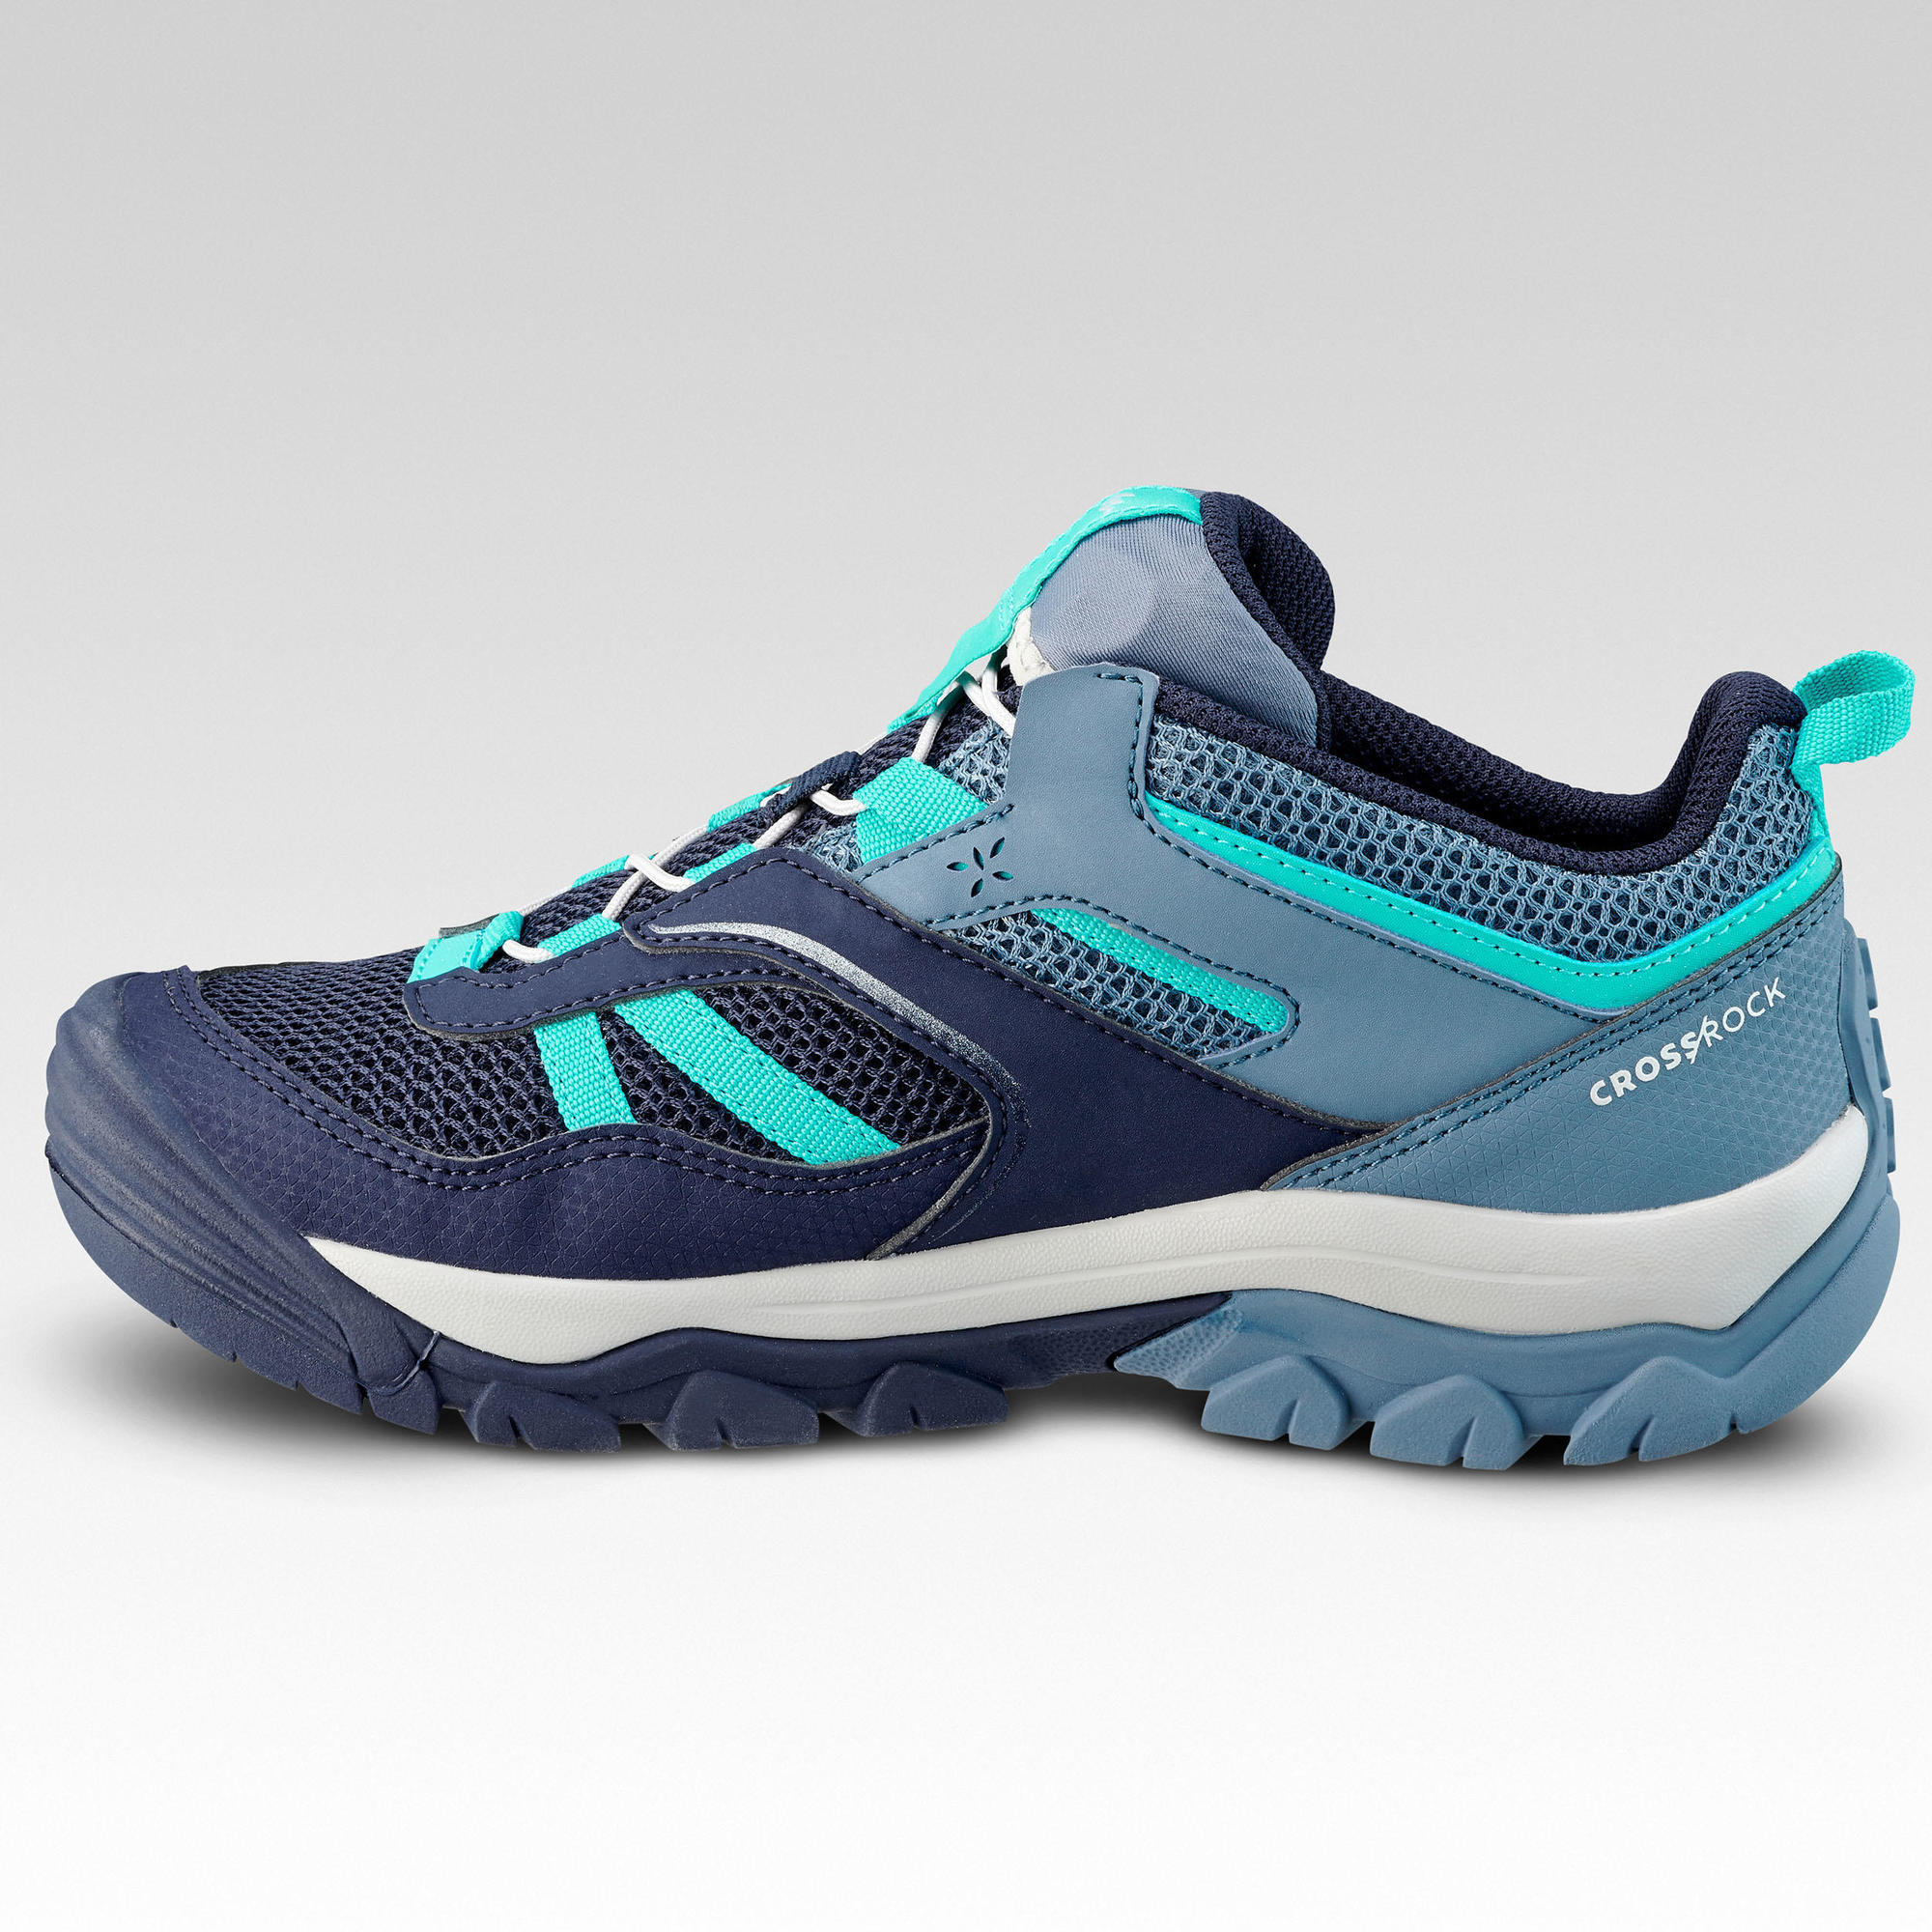 Girl's low mountain walking lace-up